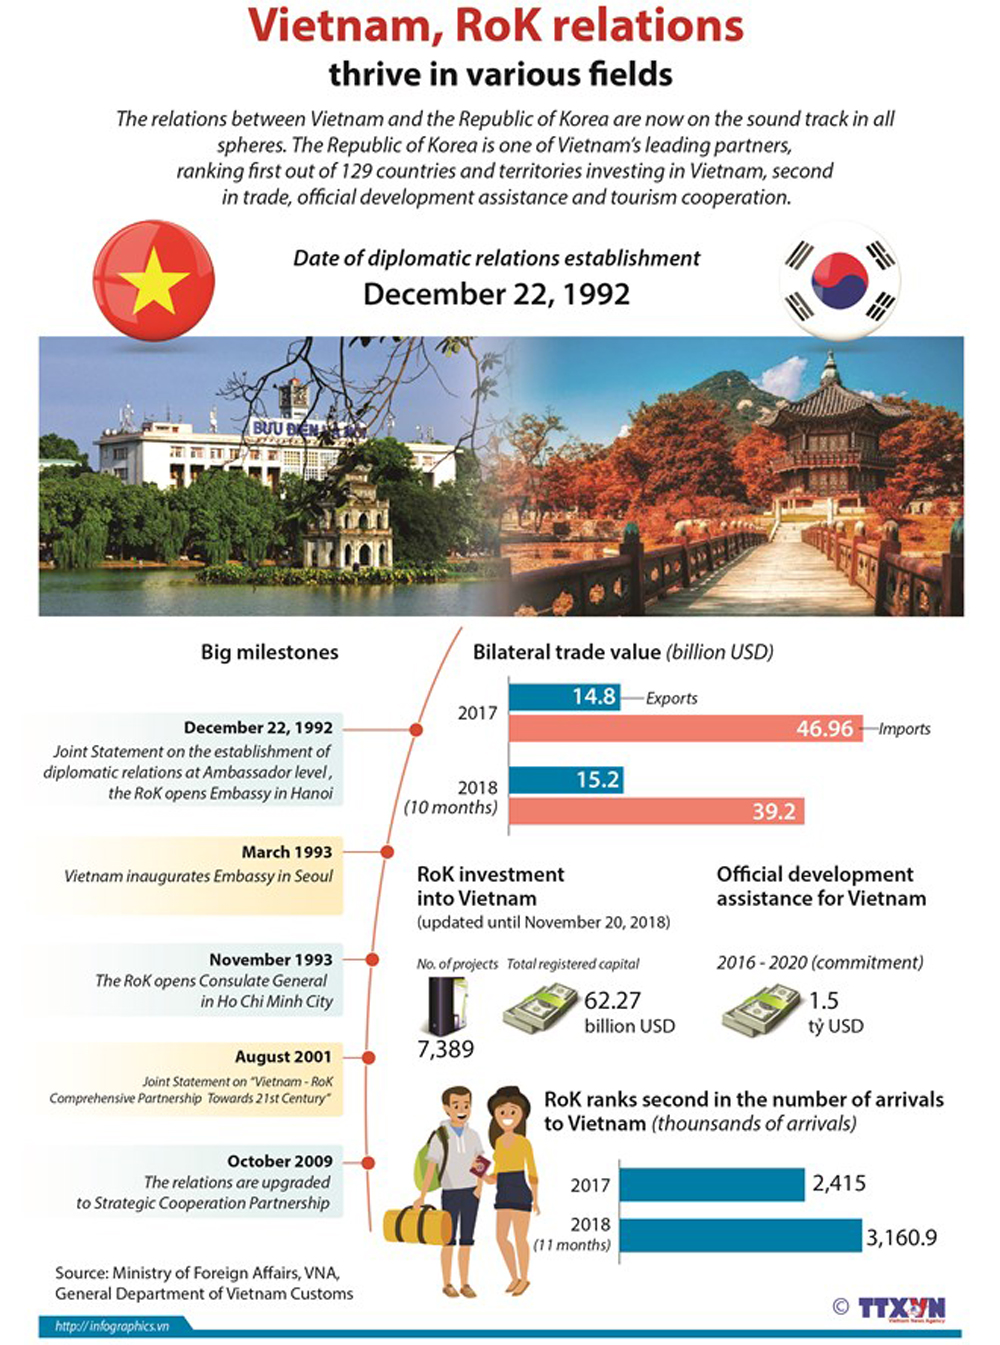 Vietnam, RoK relations, various fields, bilateral trade value, ODA, Vietnam